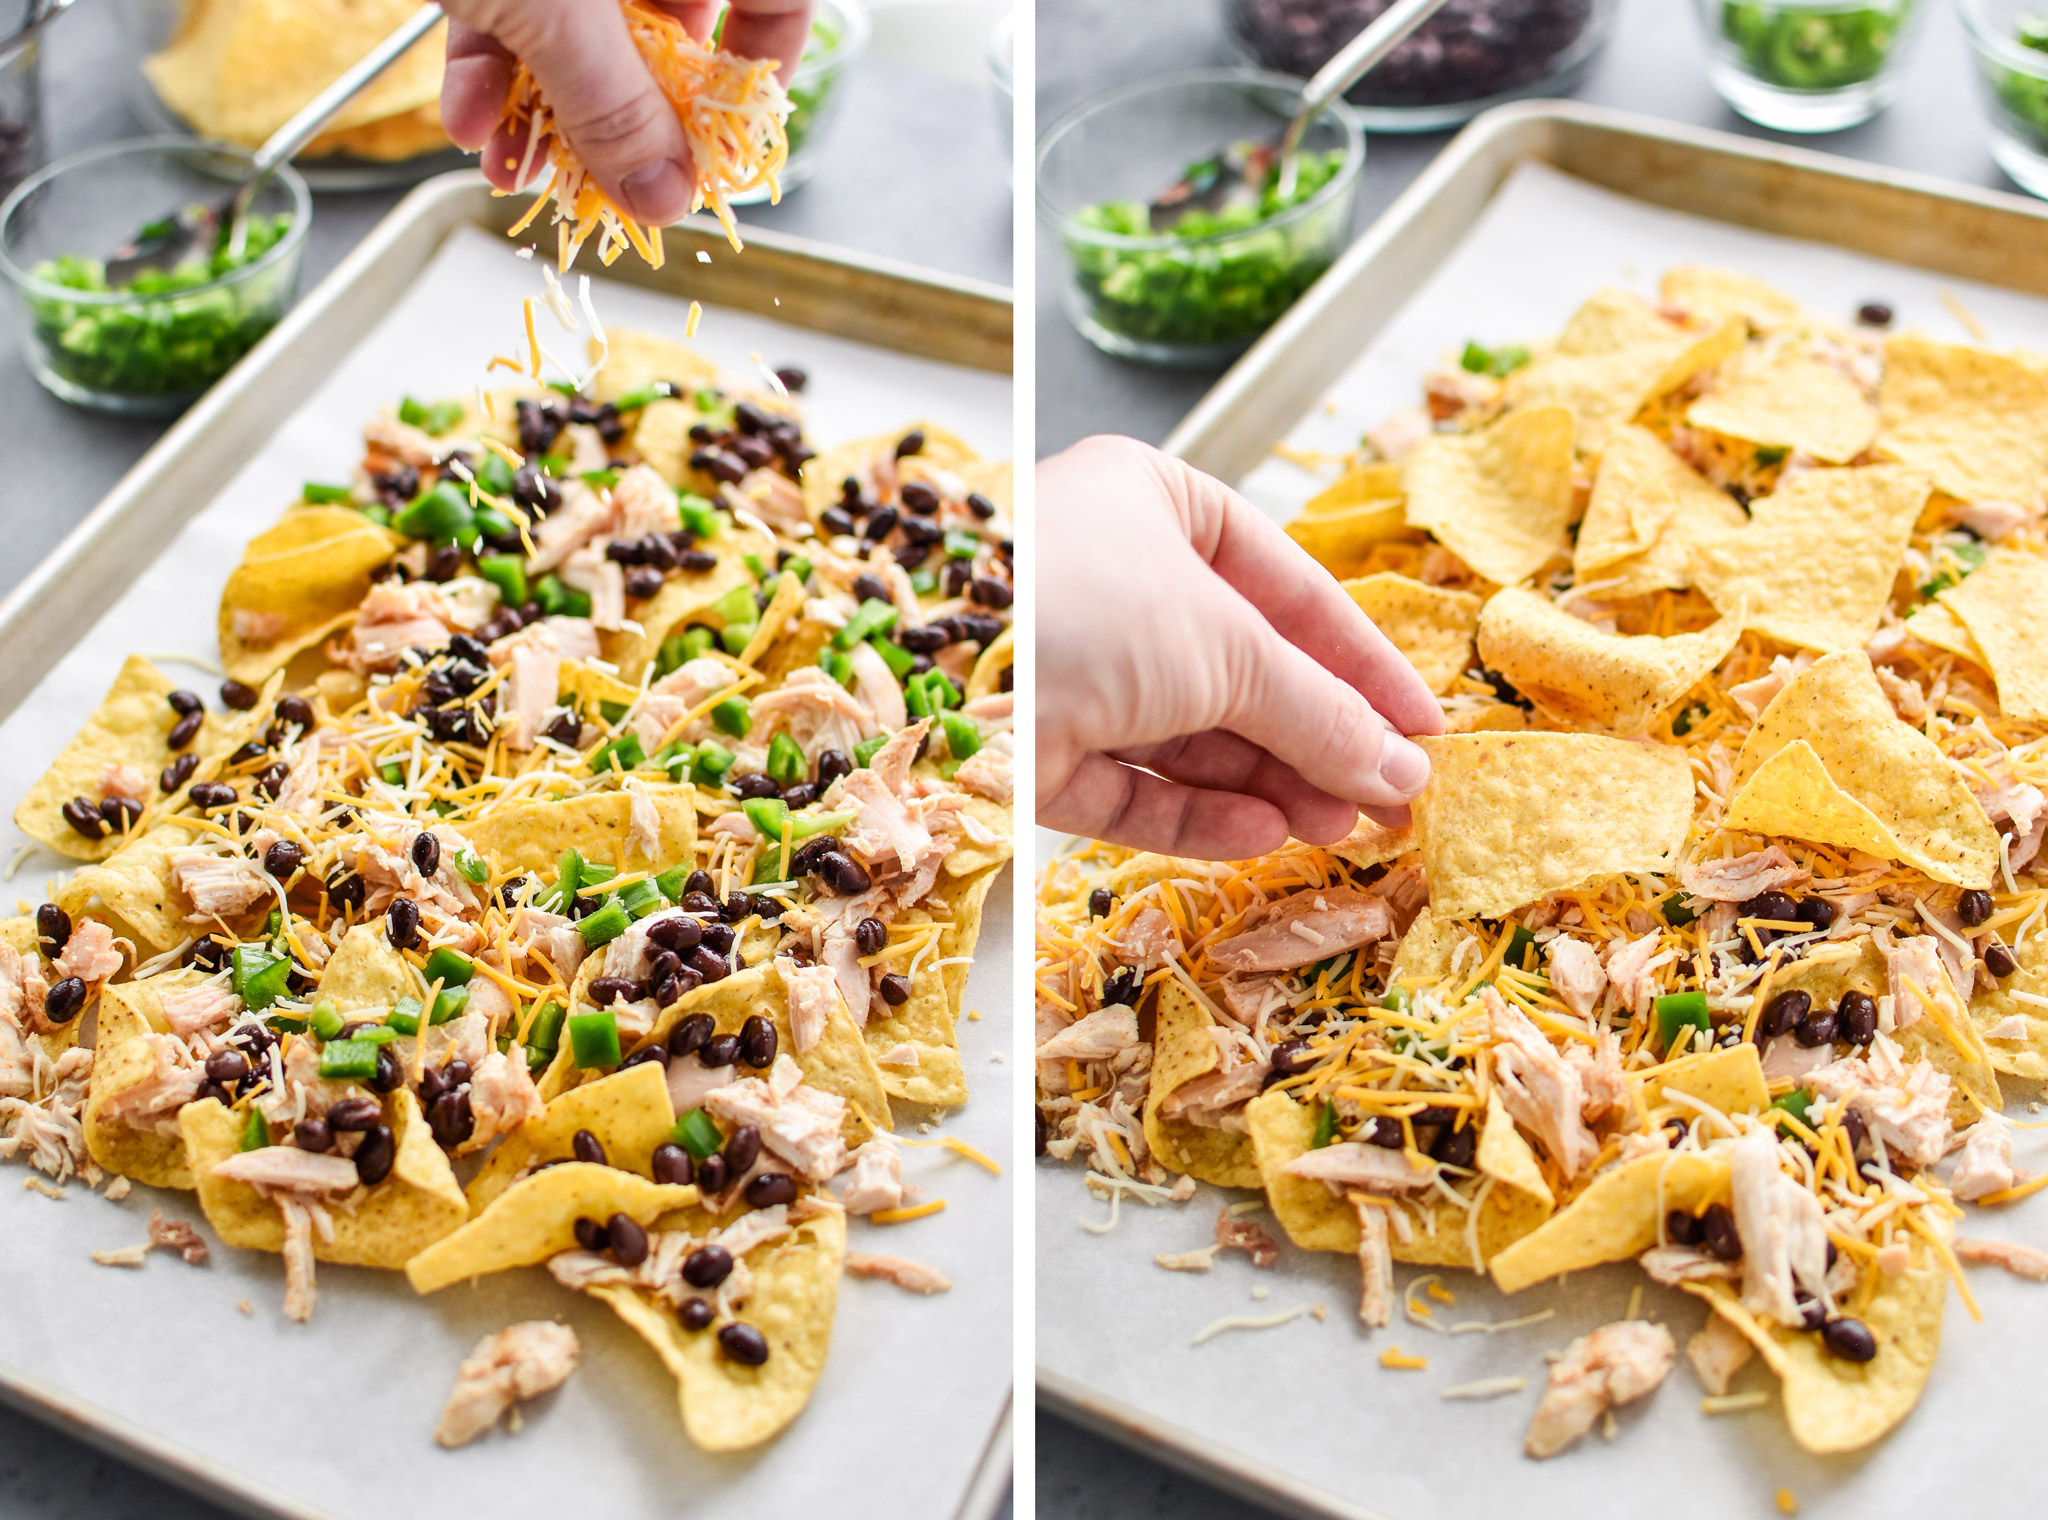 Adding cheese and then topping with a second layer of tortilla chips - prep ahead rotisserie chicken nachos.